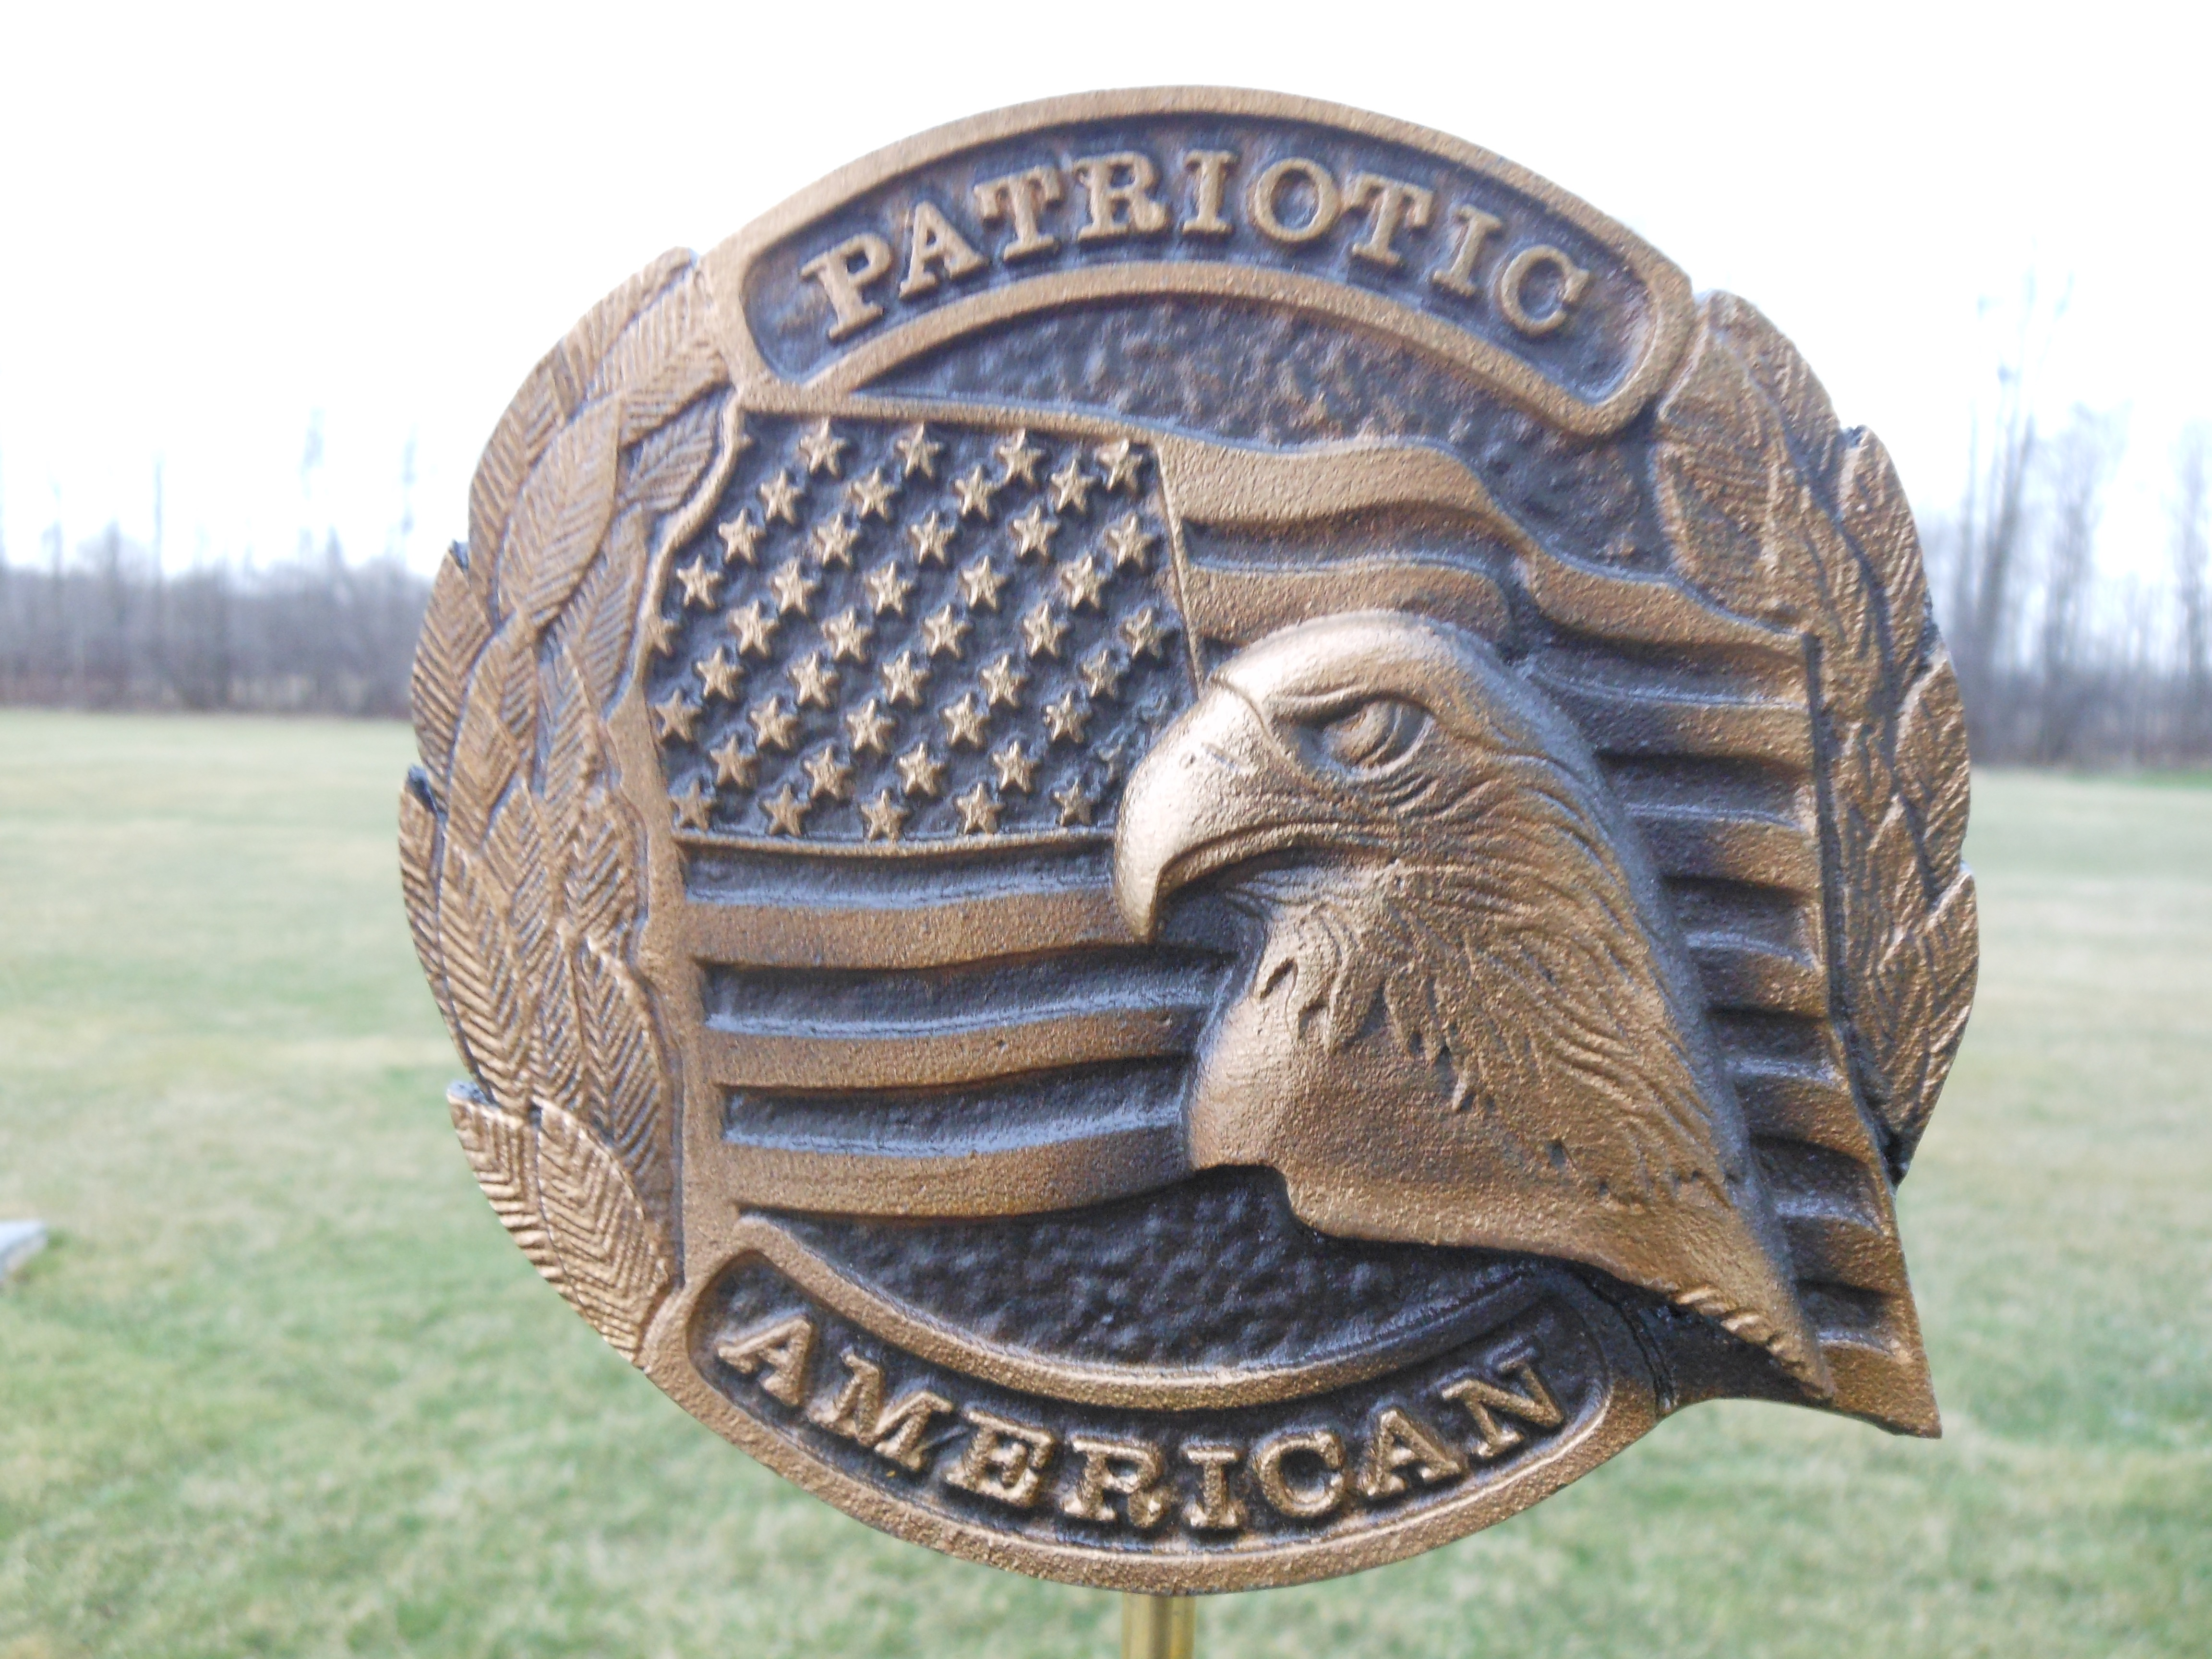 Patriotic American bronze flag holder